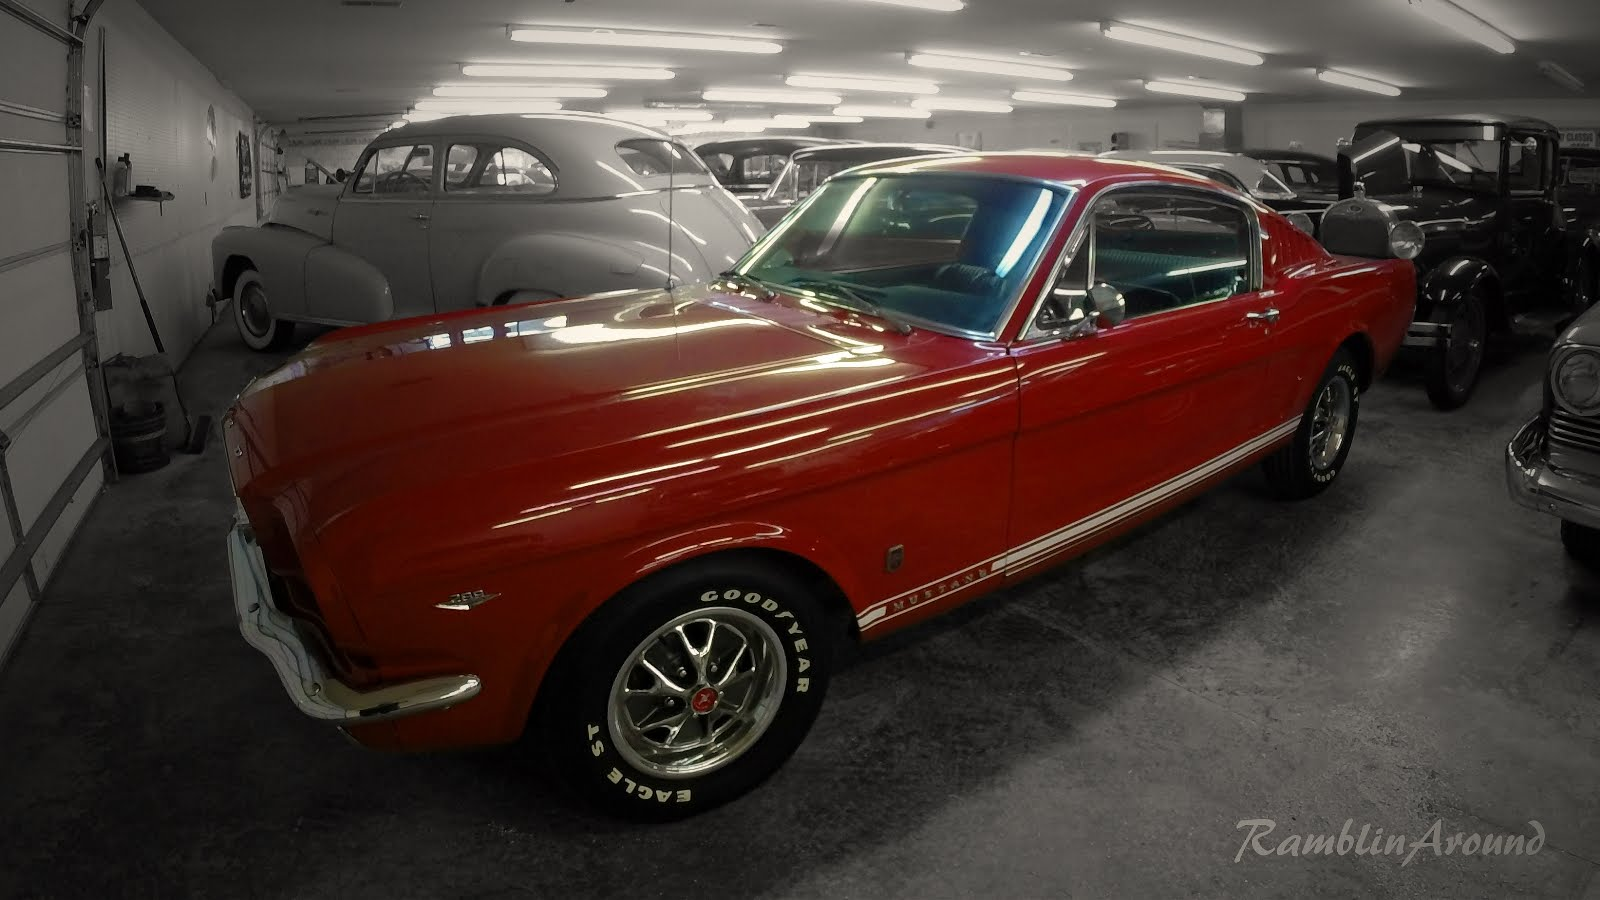 1969 Ford Mustang Gt Is One Of The Best Muscle Cars All Times Super Clean 1966 Fastback Spotted